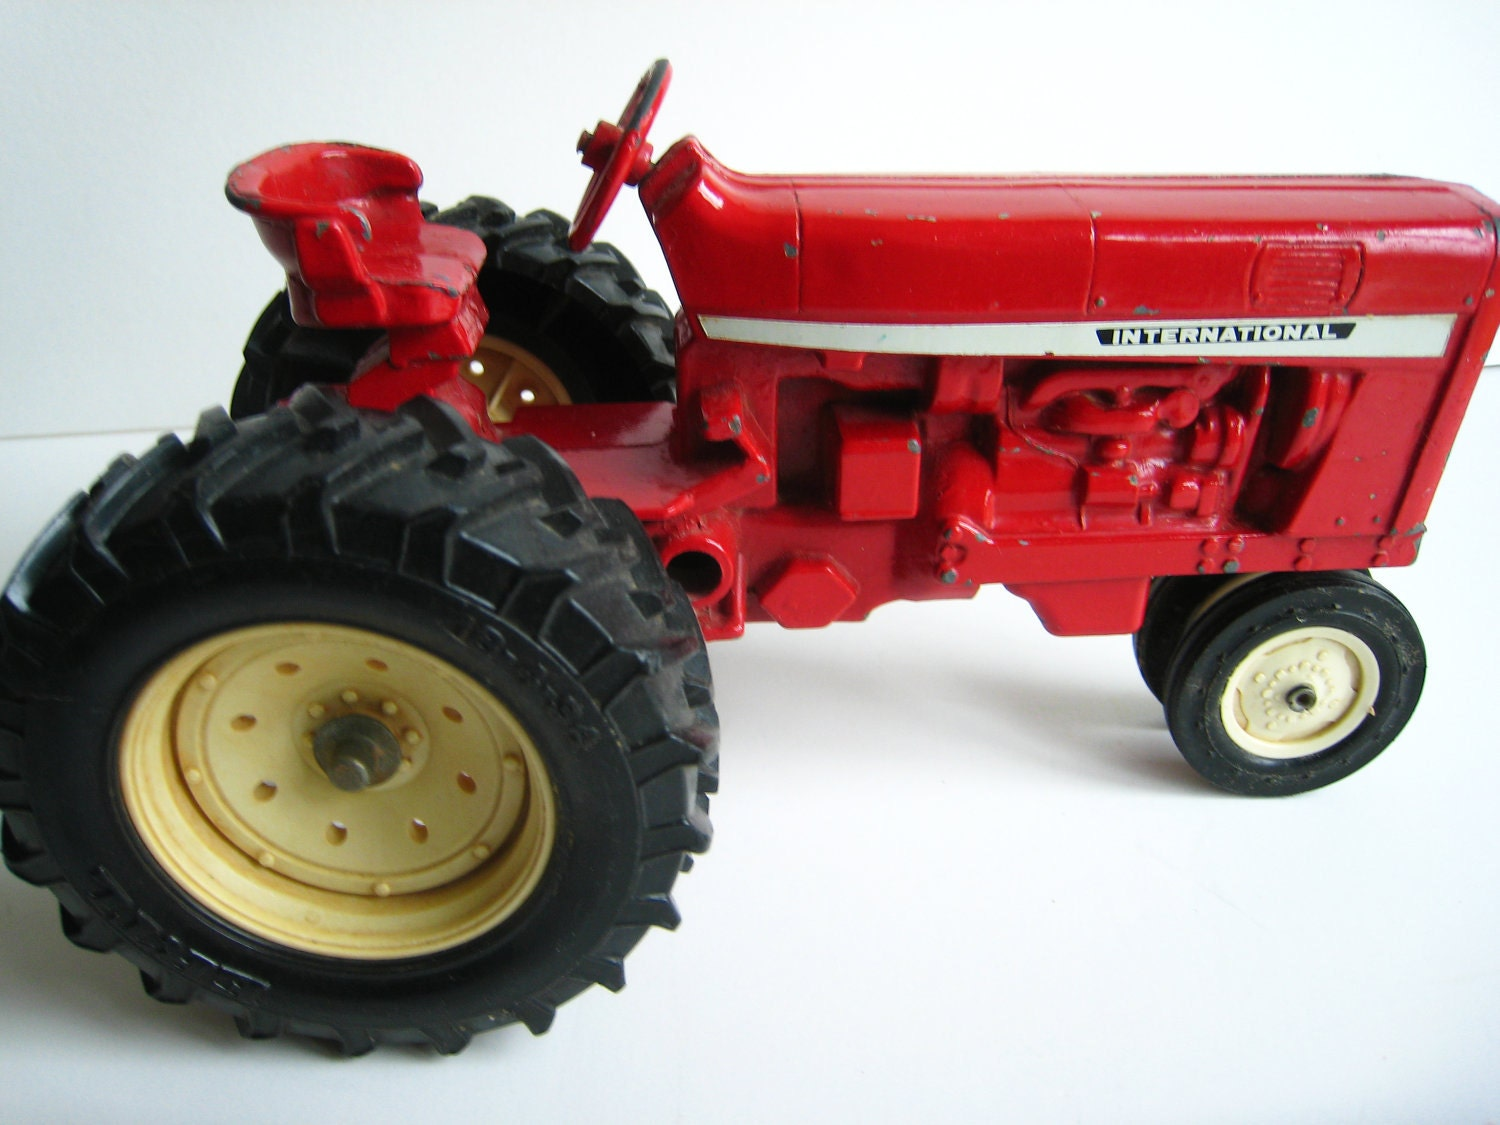 Old Metal Wheels With Tractor : Vintage international red metal tractor toy made by ertl